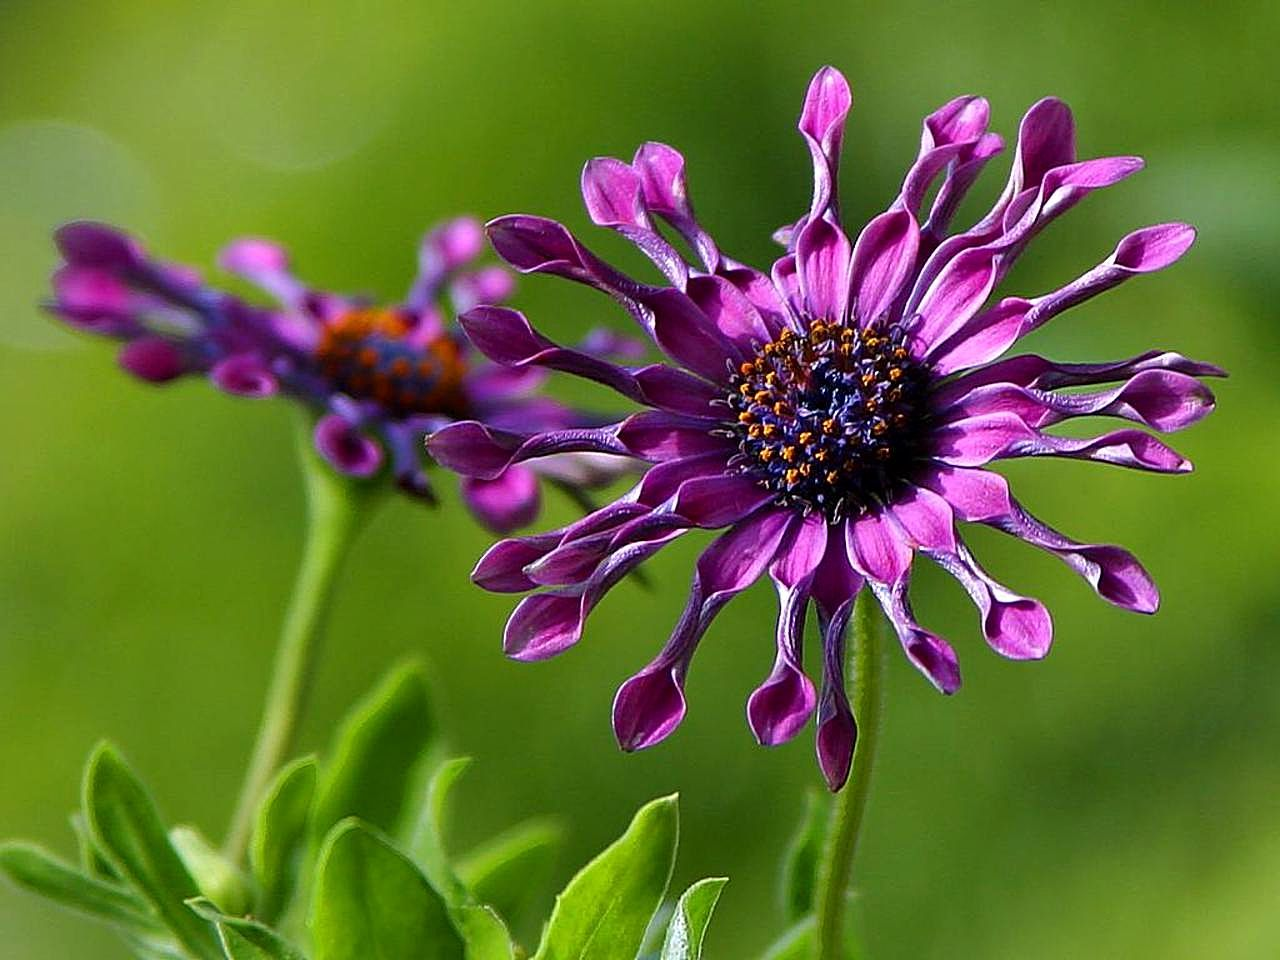 Lets enjoy the beauty most beautiful flowers in the world african daisy flower its native habitat south africa the african daisy bursts into bloom when the spring rains come but in gardens plants bloom copiously izmirmasajfo